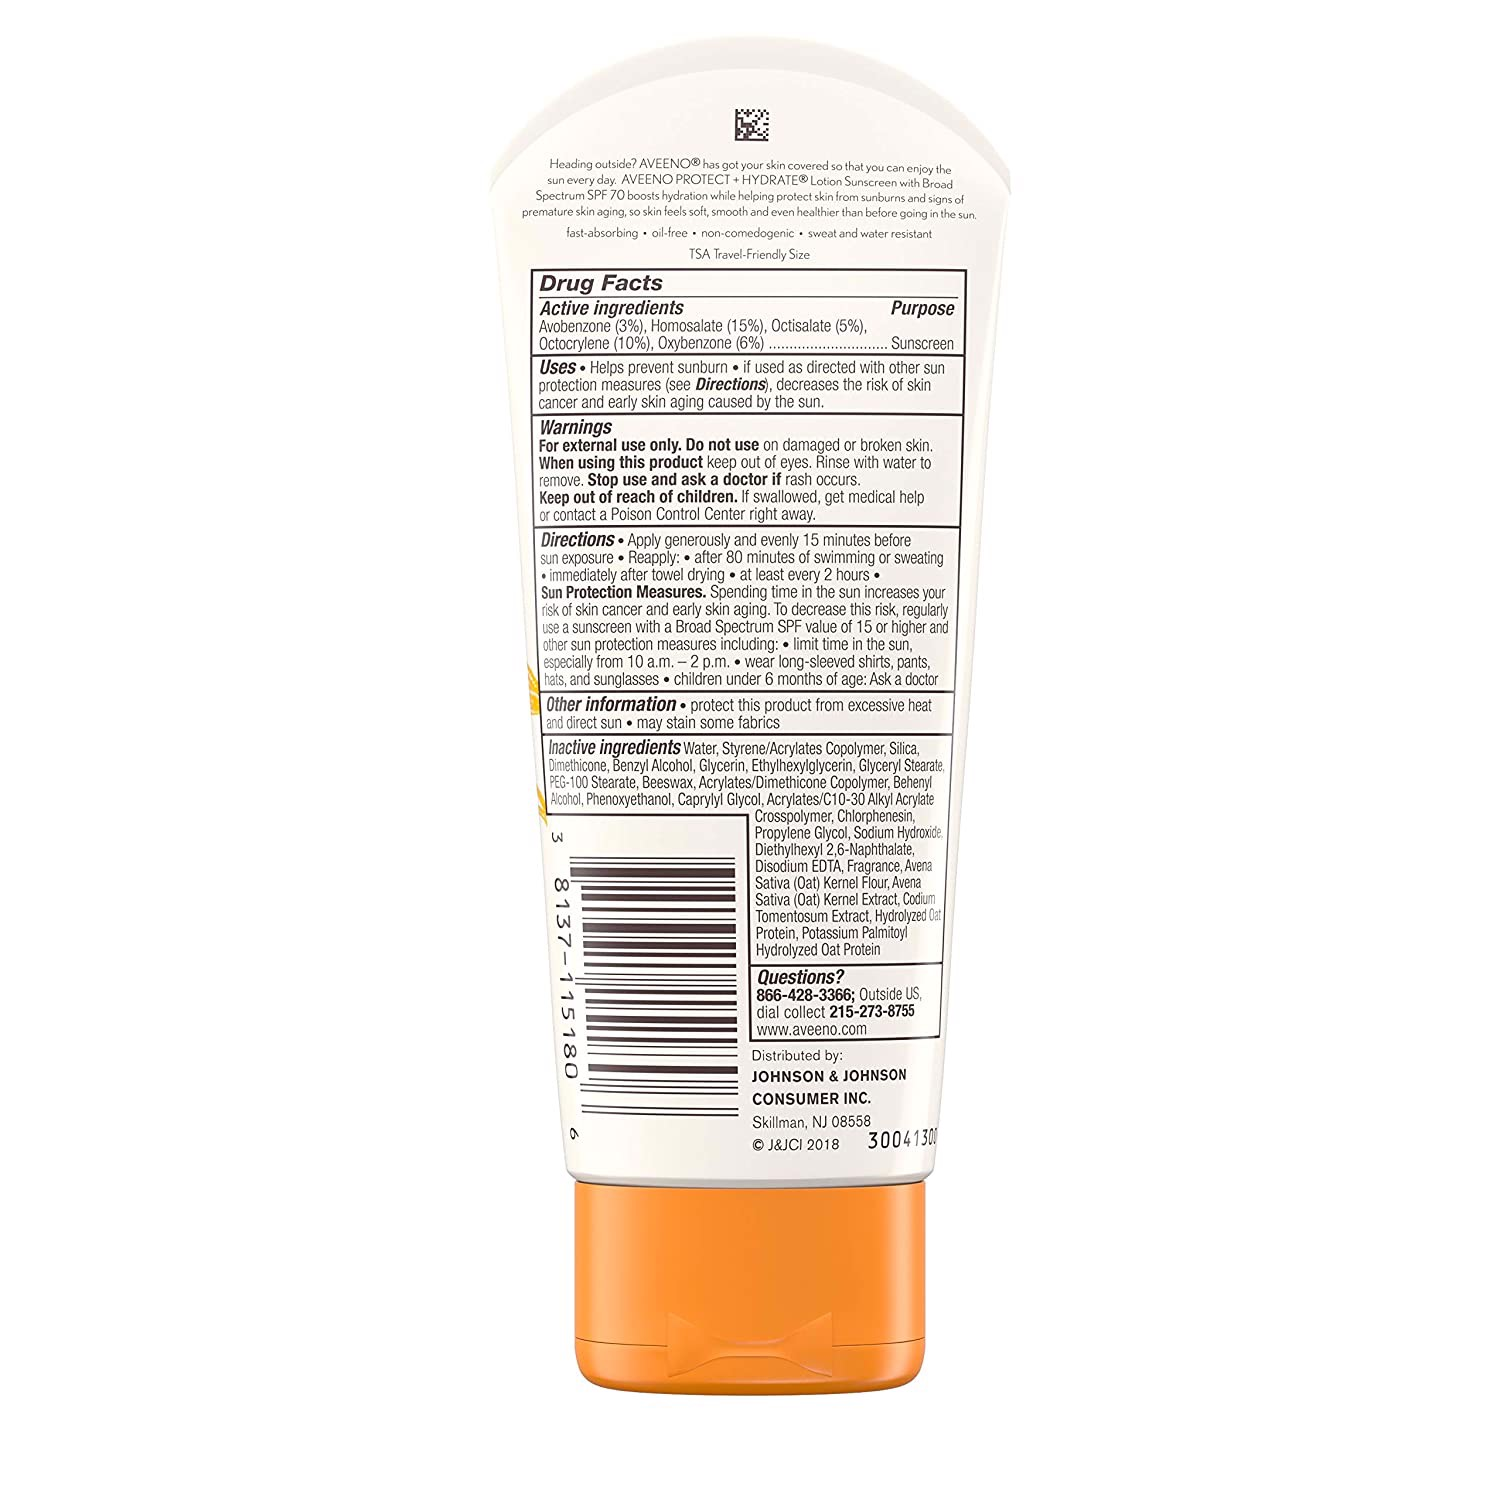 Kem chống nắng Aveeno Protect + Hydrate Moisturizing Sunscreen Lotion with Broad Spectrum SPF 70